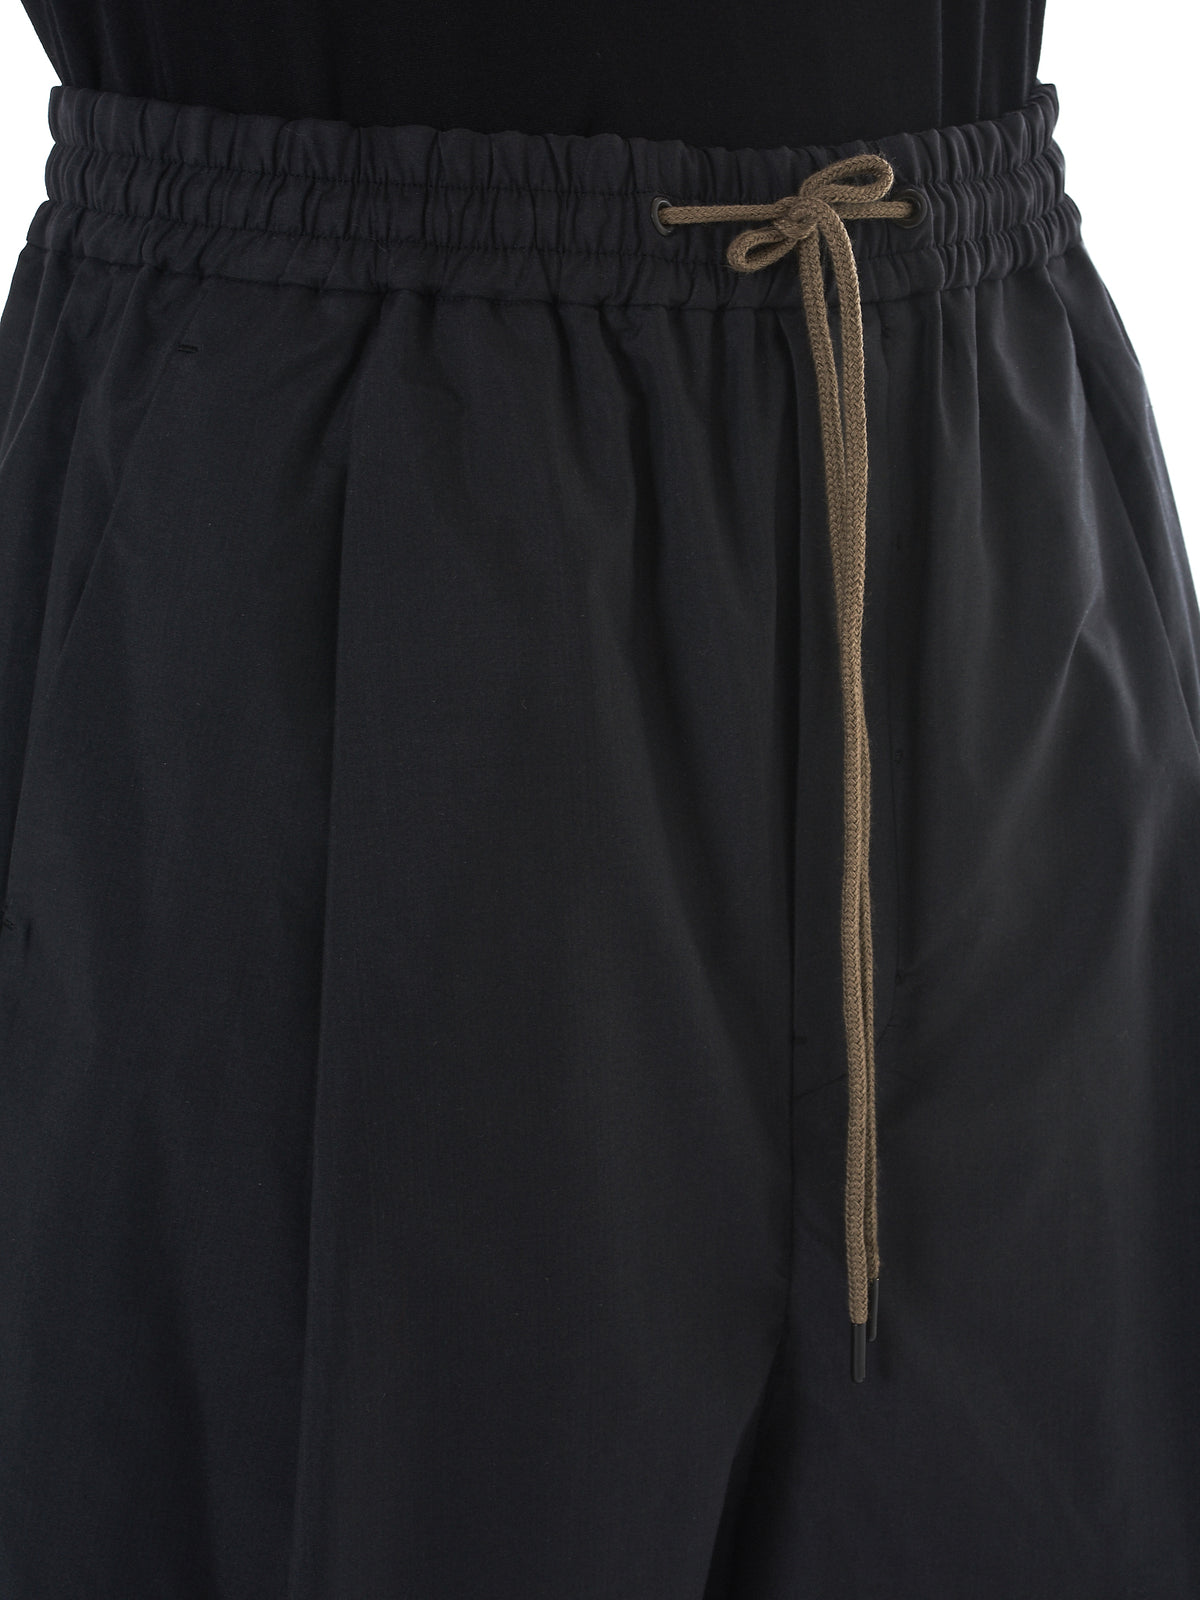 Devoa Silk Shorts - Hlorenzo Detail 2